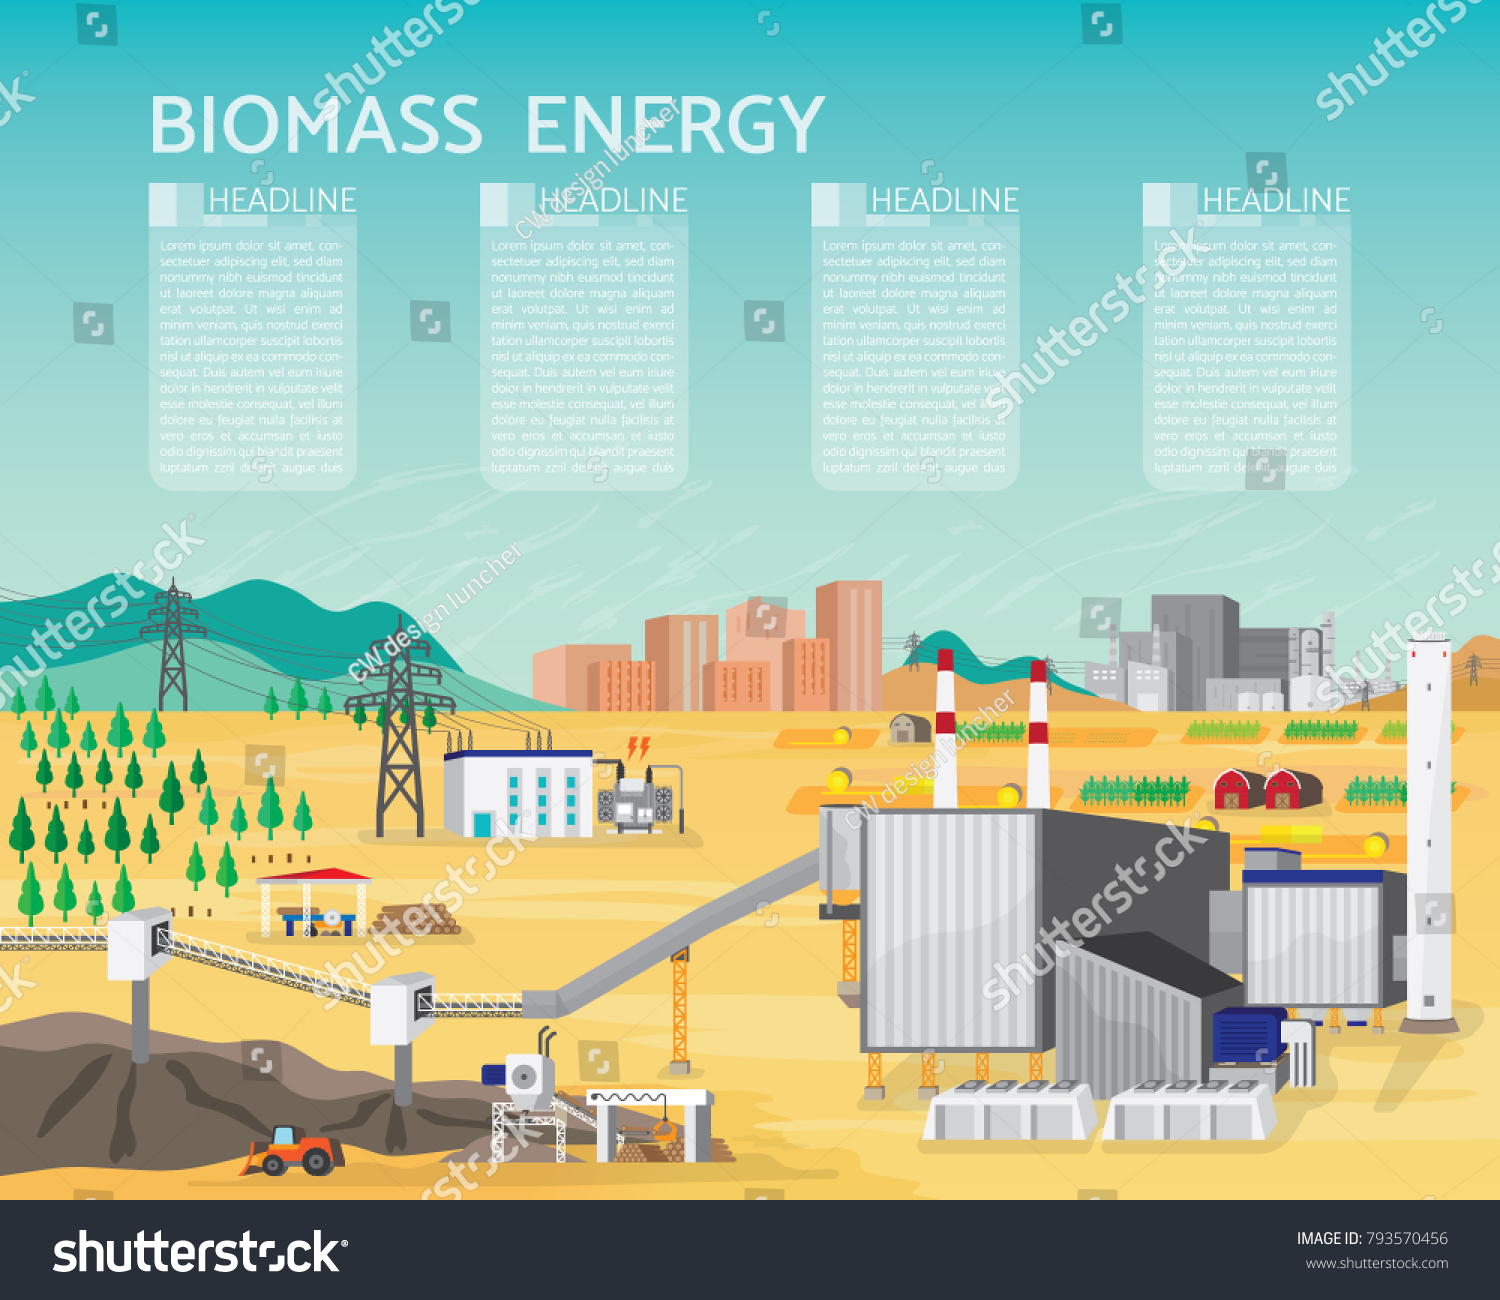 Biomass Energy Biomass Power Plant Boiler Stock Vector (Royalty Free ...